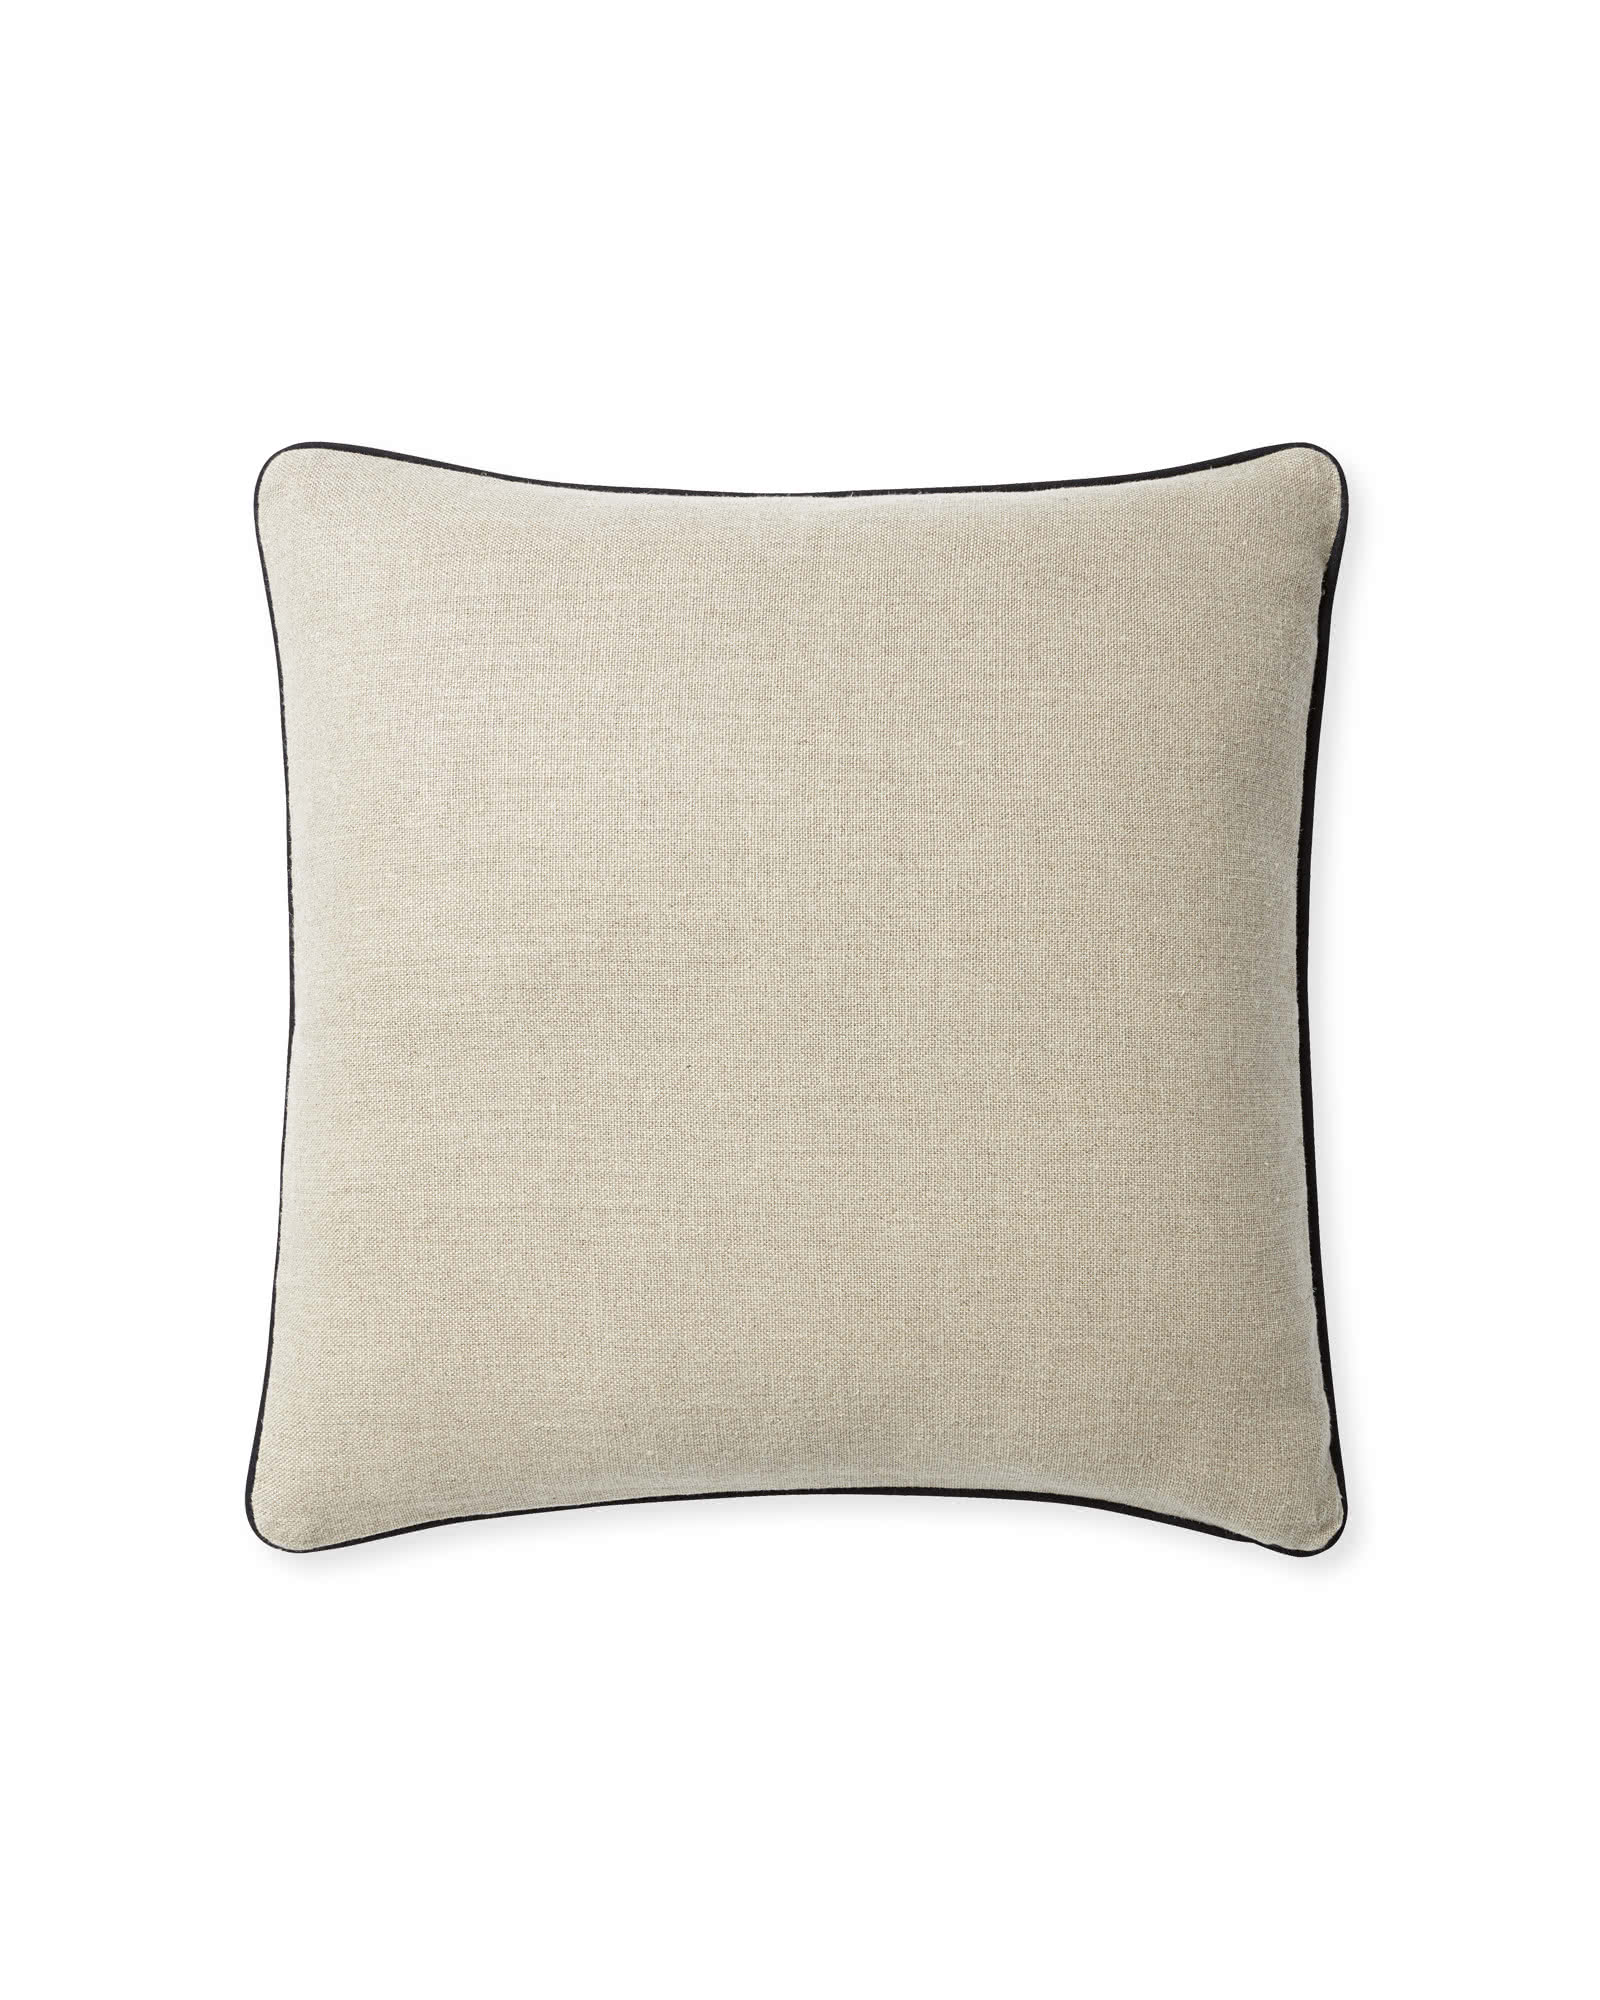 Suede Pillow Cover, Navy